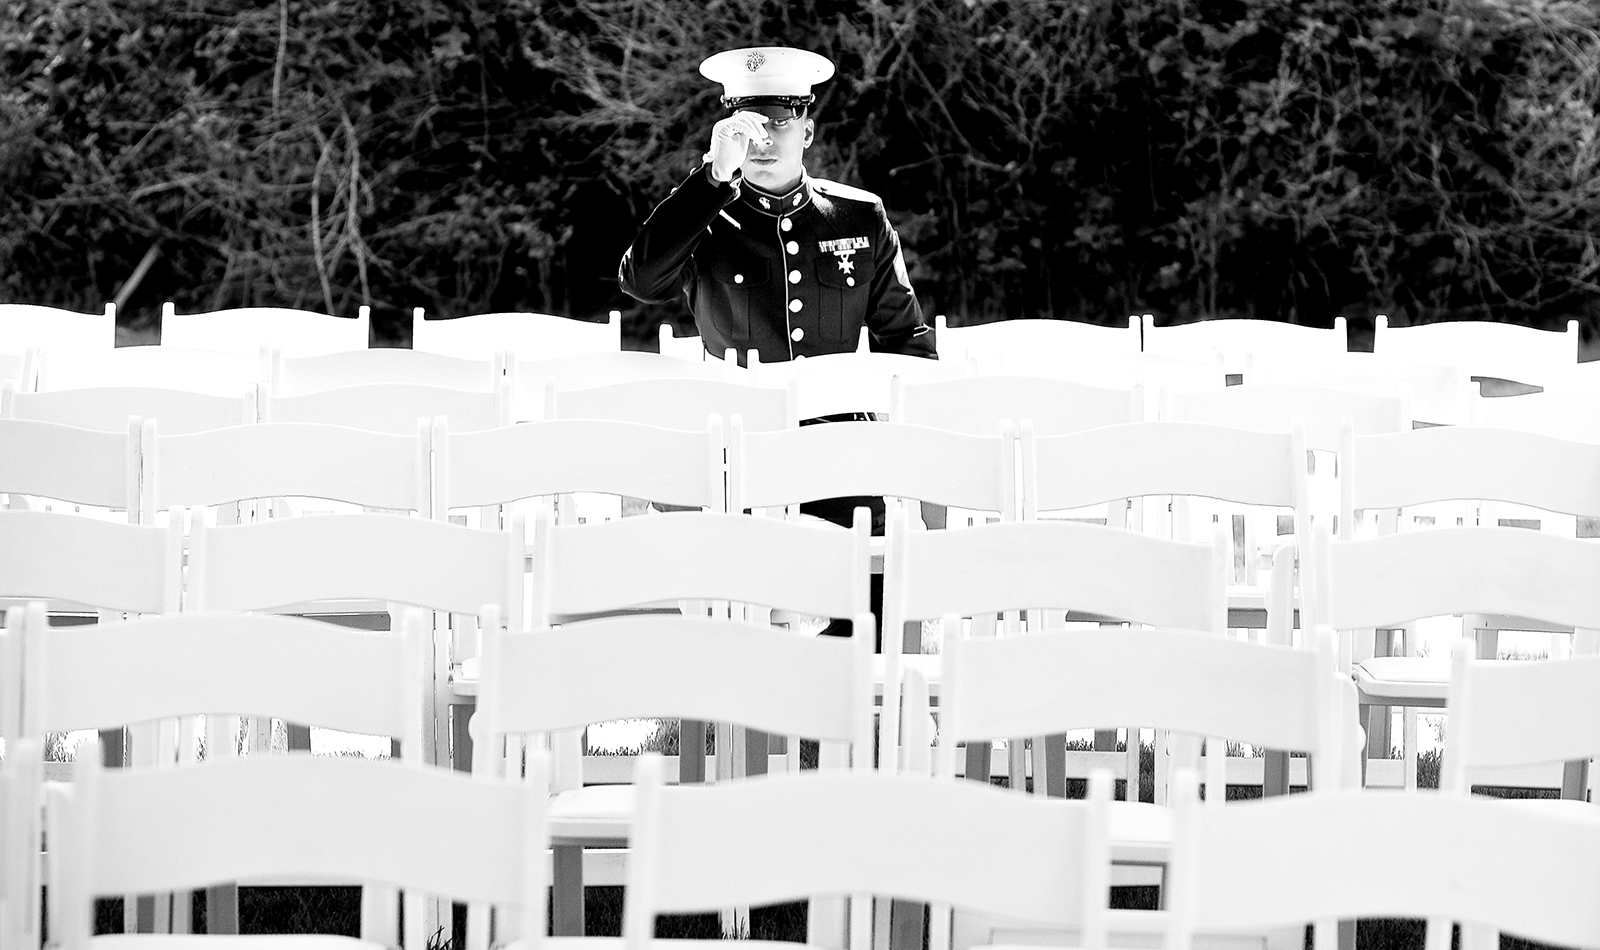 Wedding of a United States Marine Jake to bride Kristen. (Photo by Scott Eklund /Red Box Pictures)